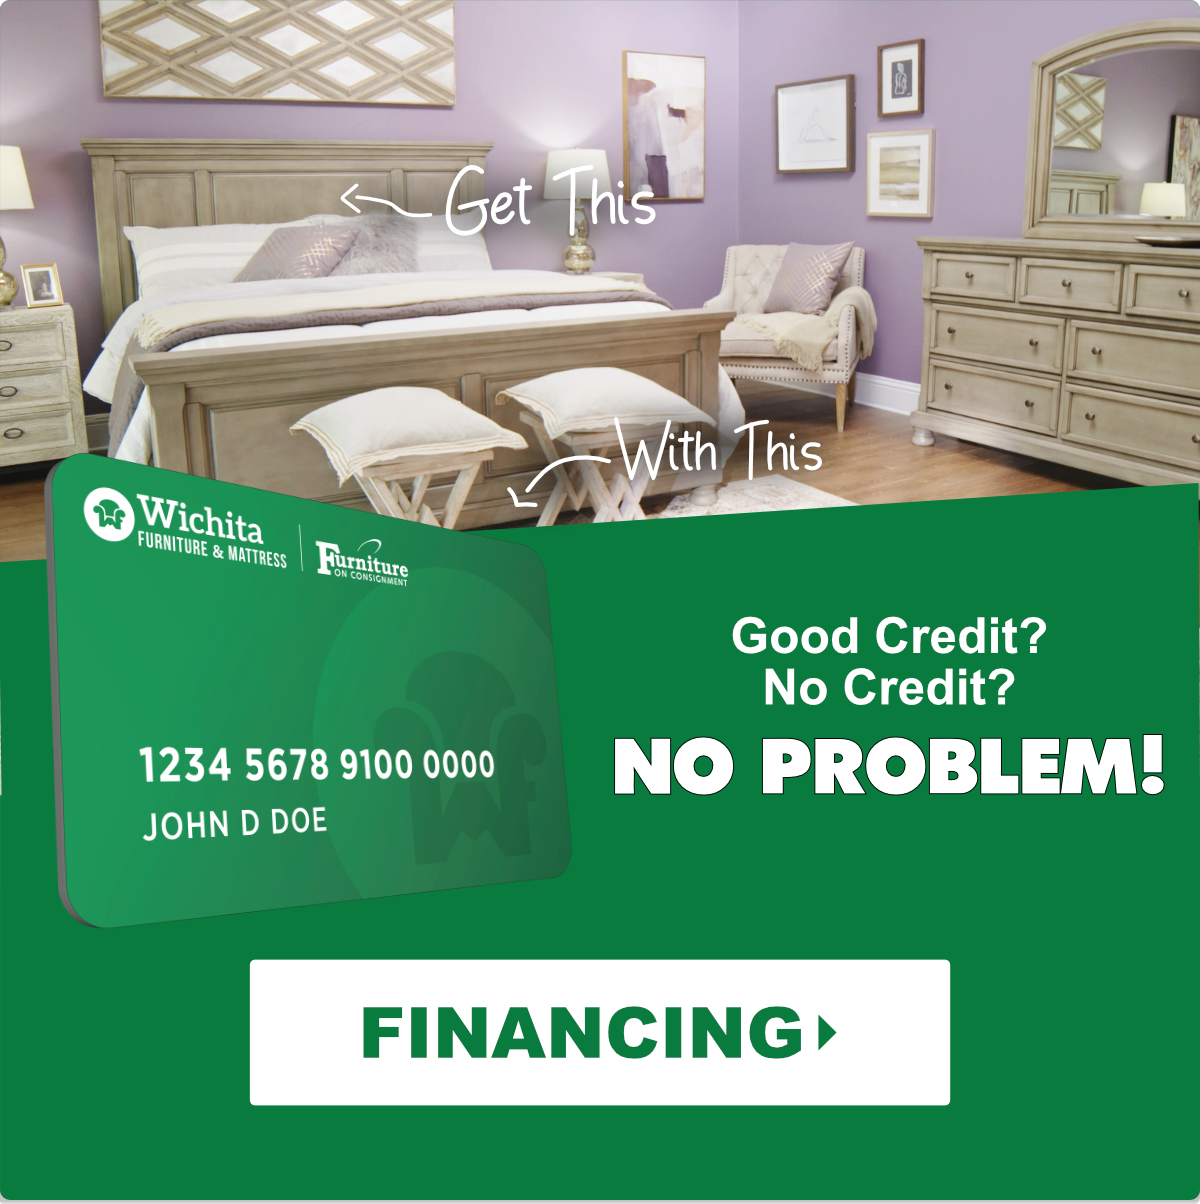 Financing at Wichita Furniture & Mattress